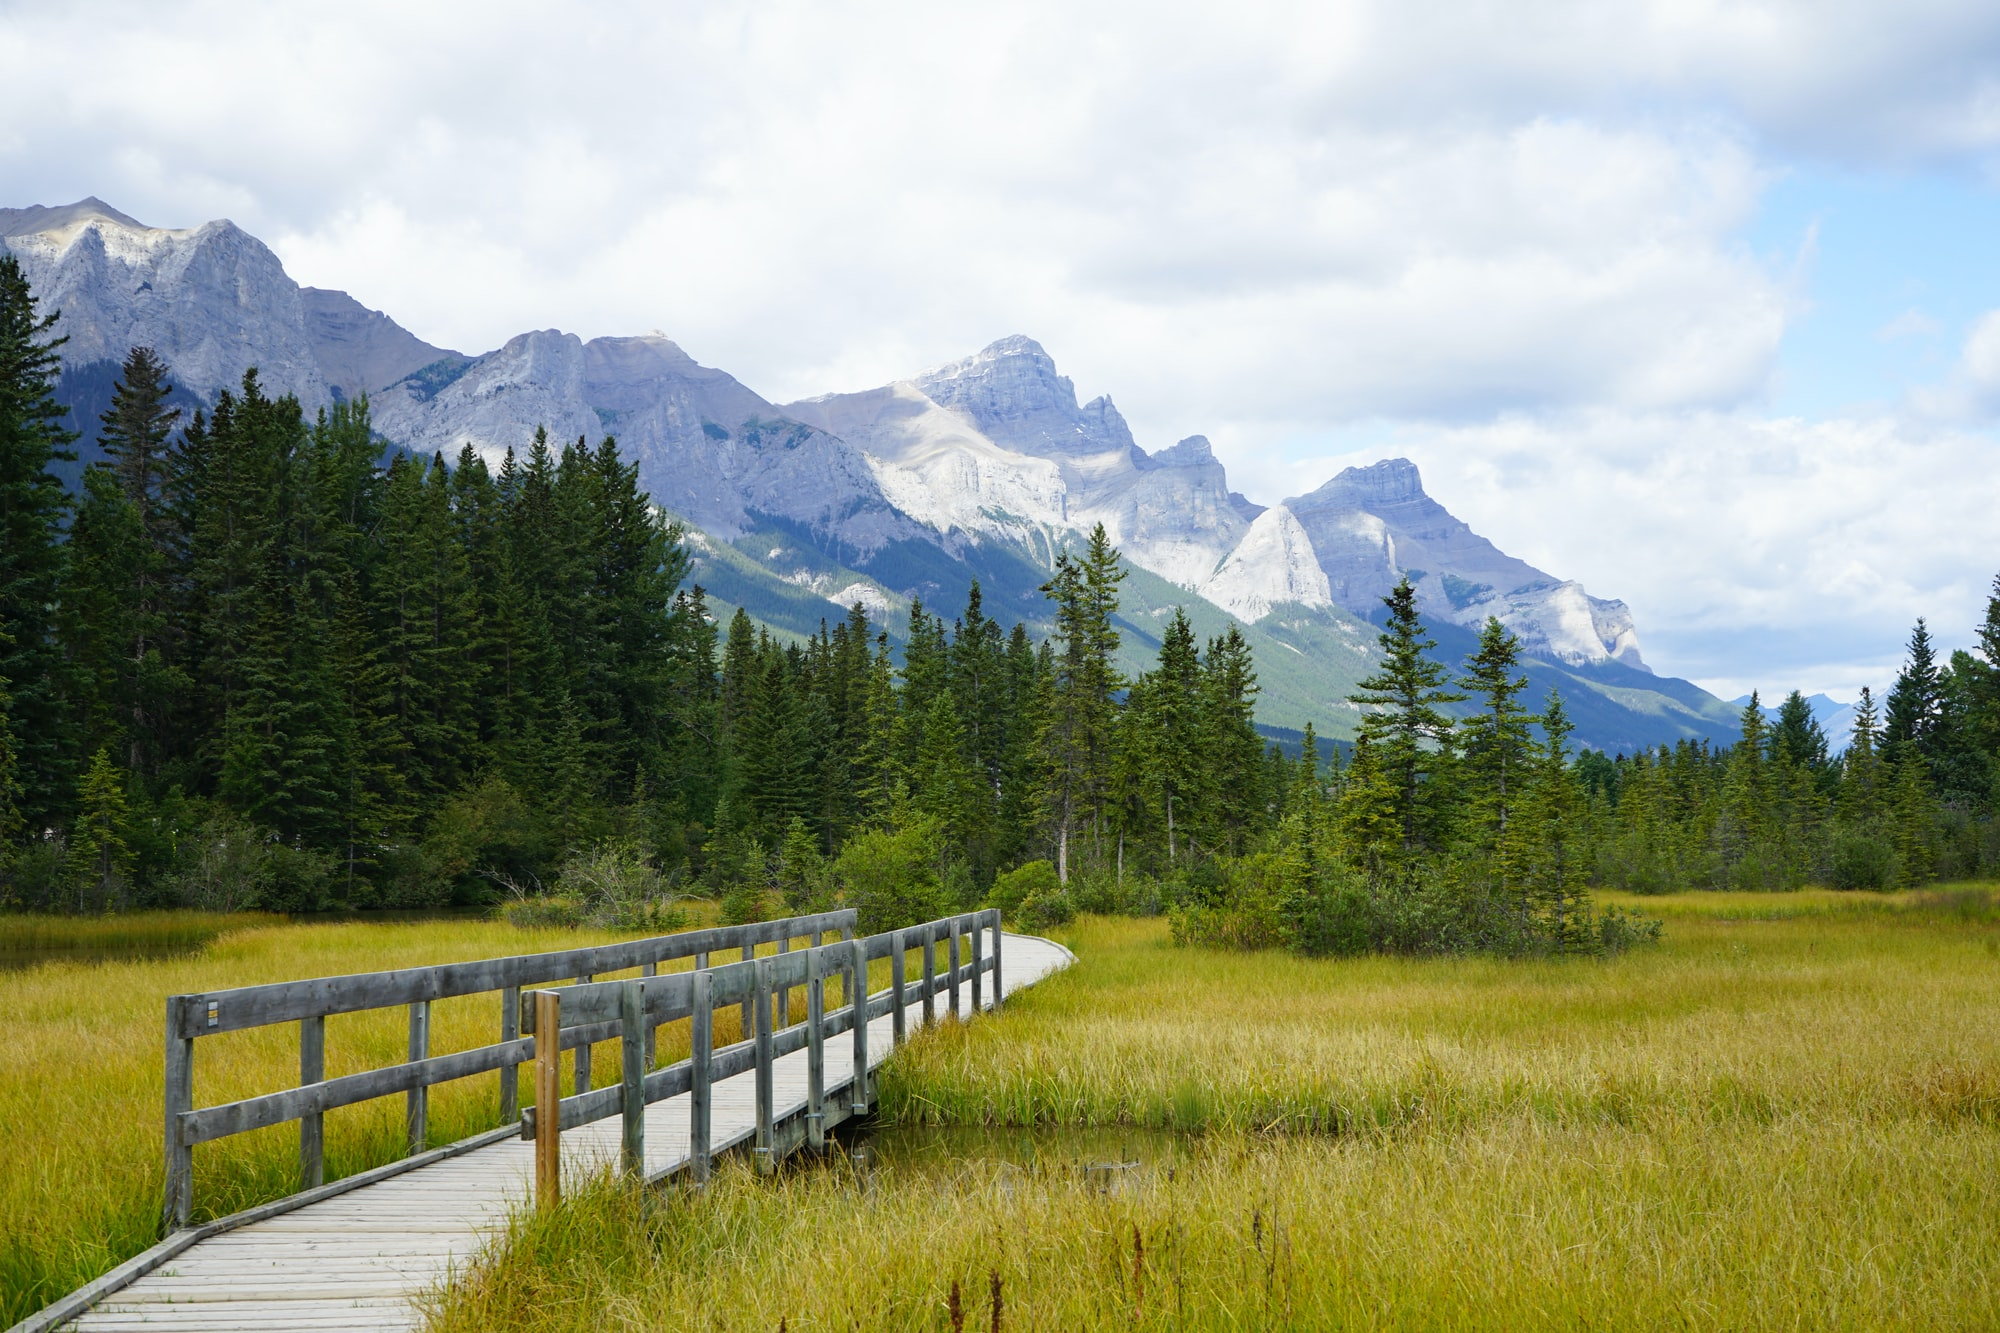 Vacation in Canmore, Alberta